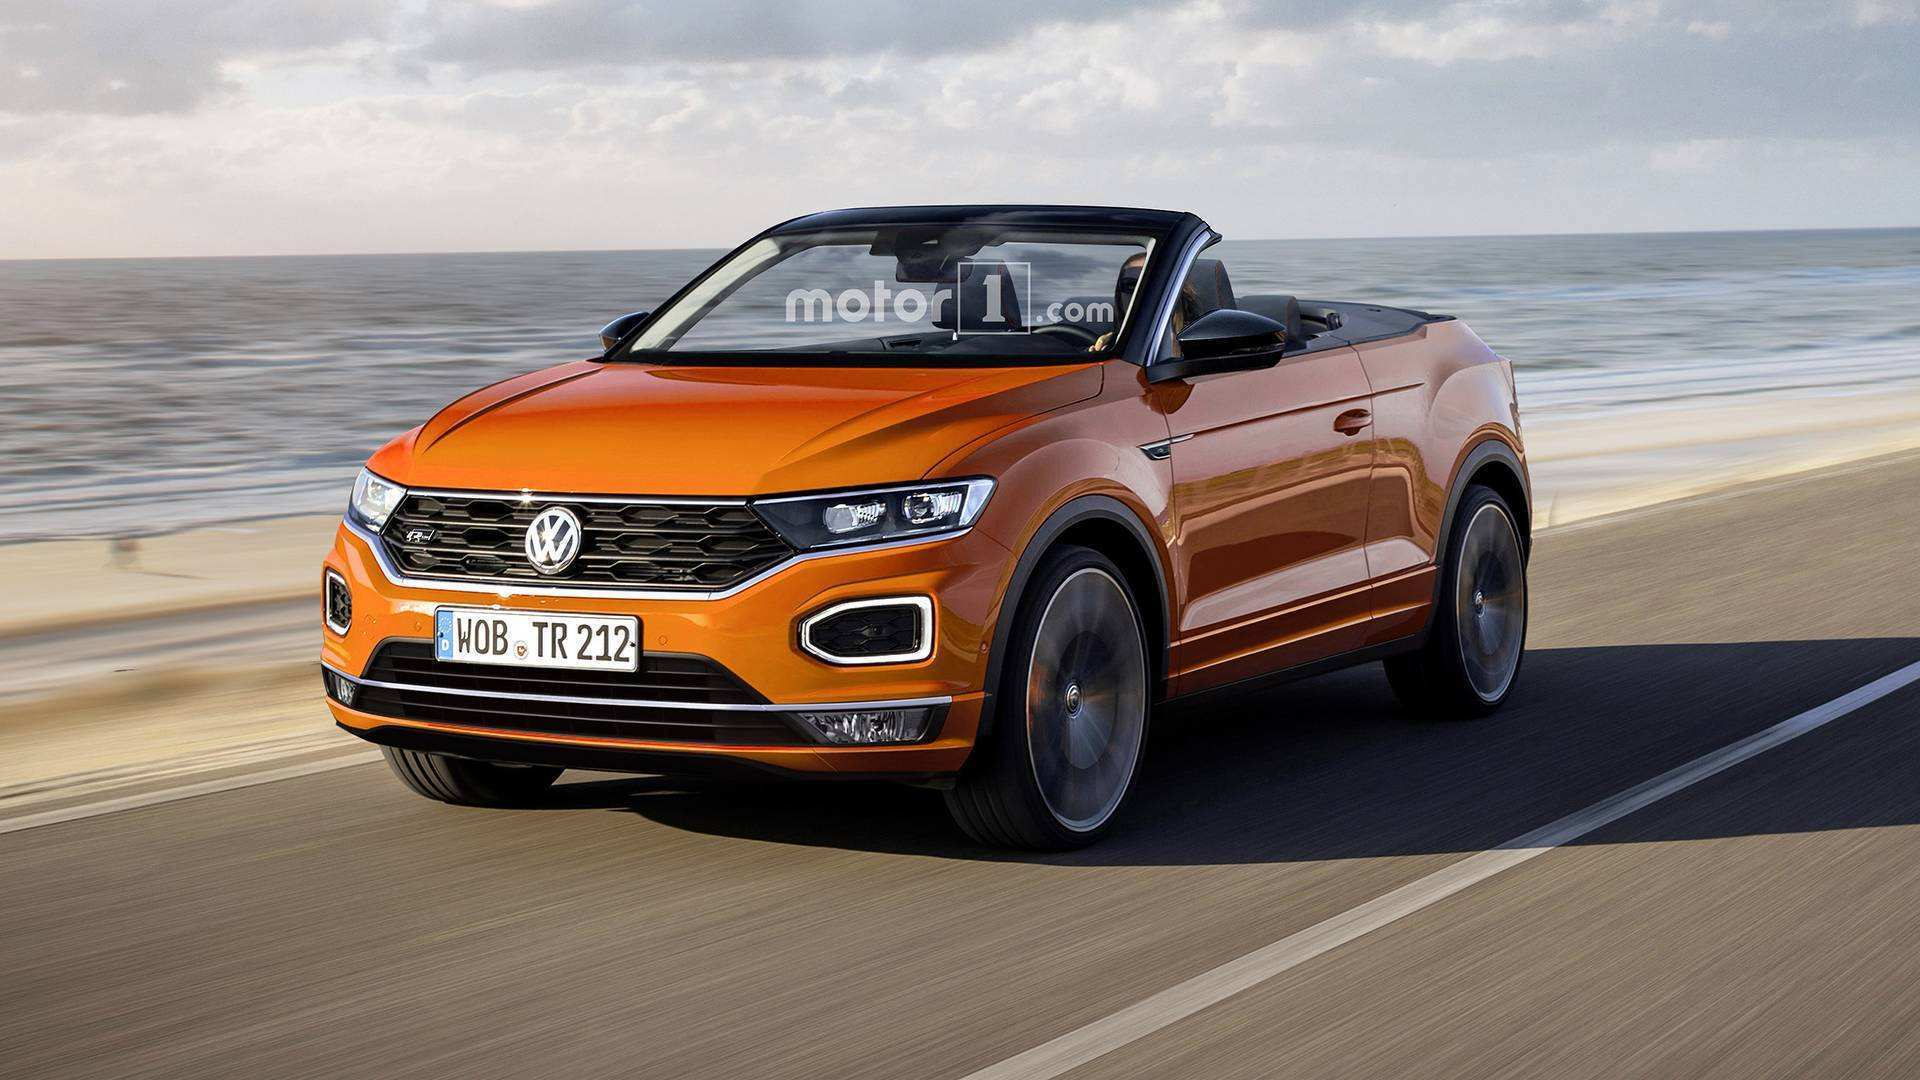 49 New Volkswagen Convertible 2020 Price And Review